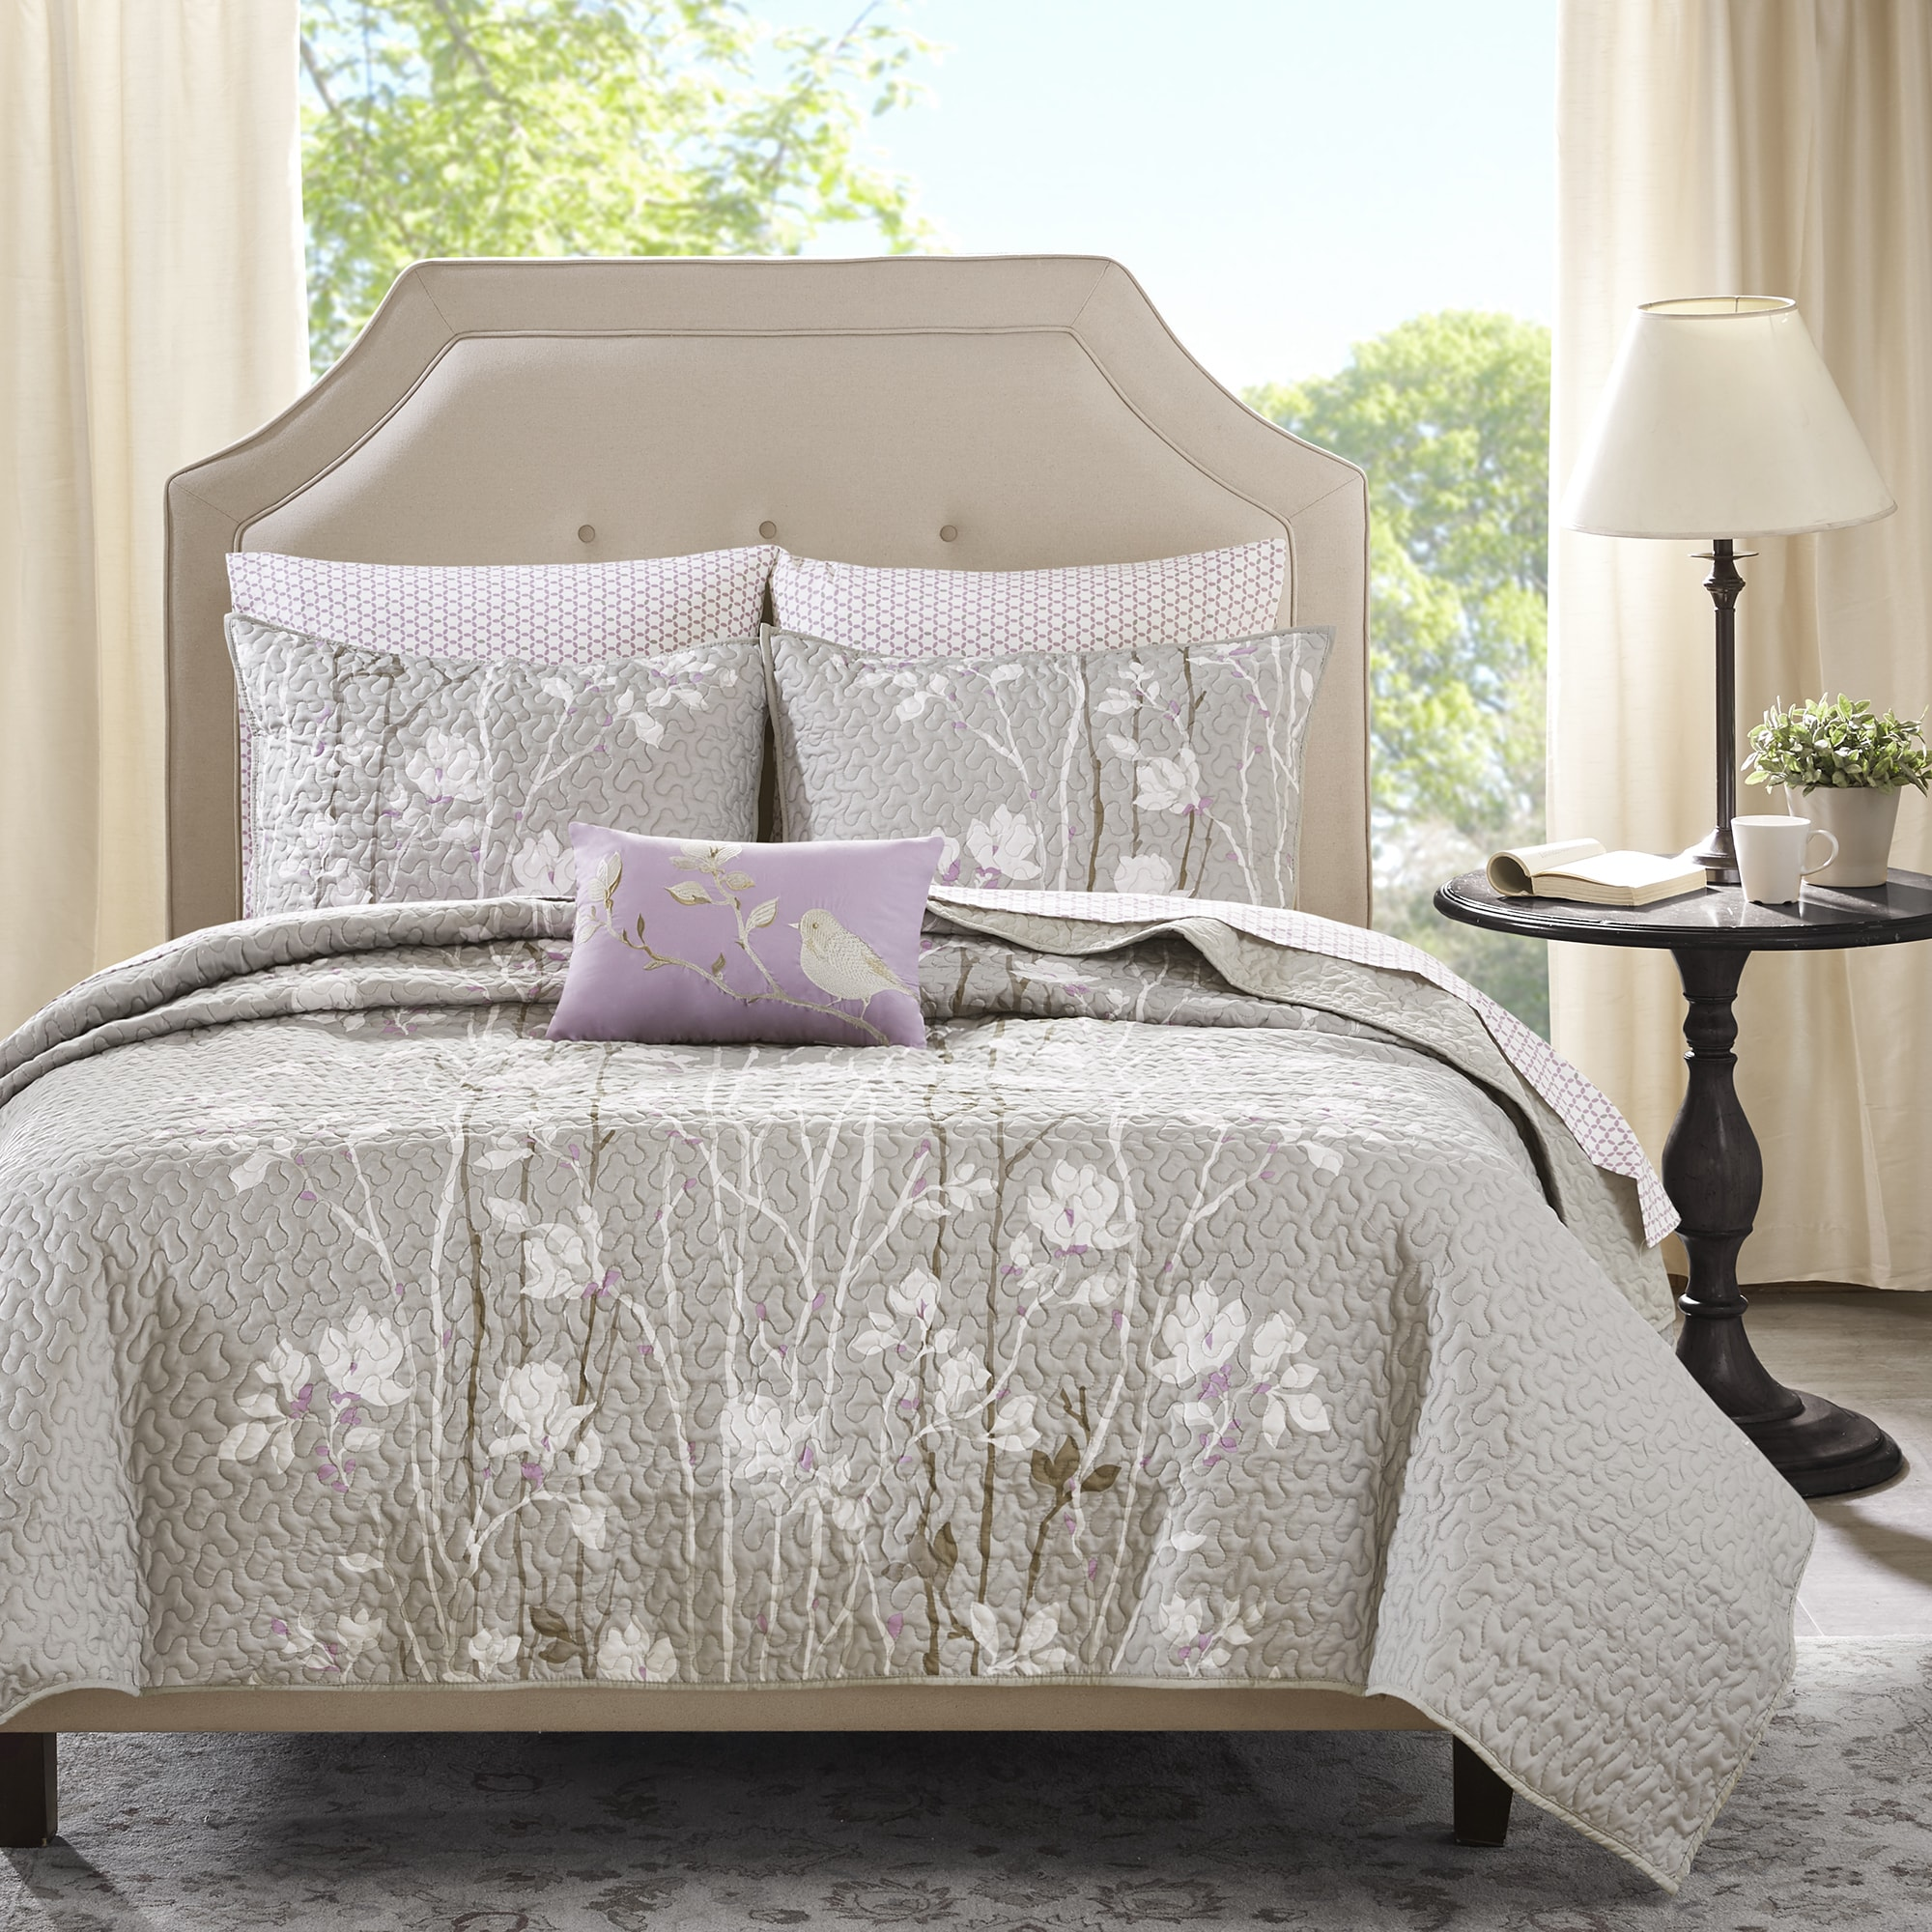 scene courtney com shipping bedding bed overstock product city free today comforter set bath